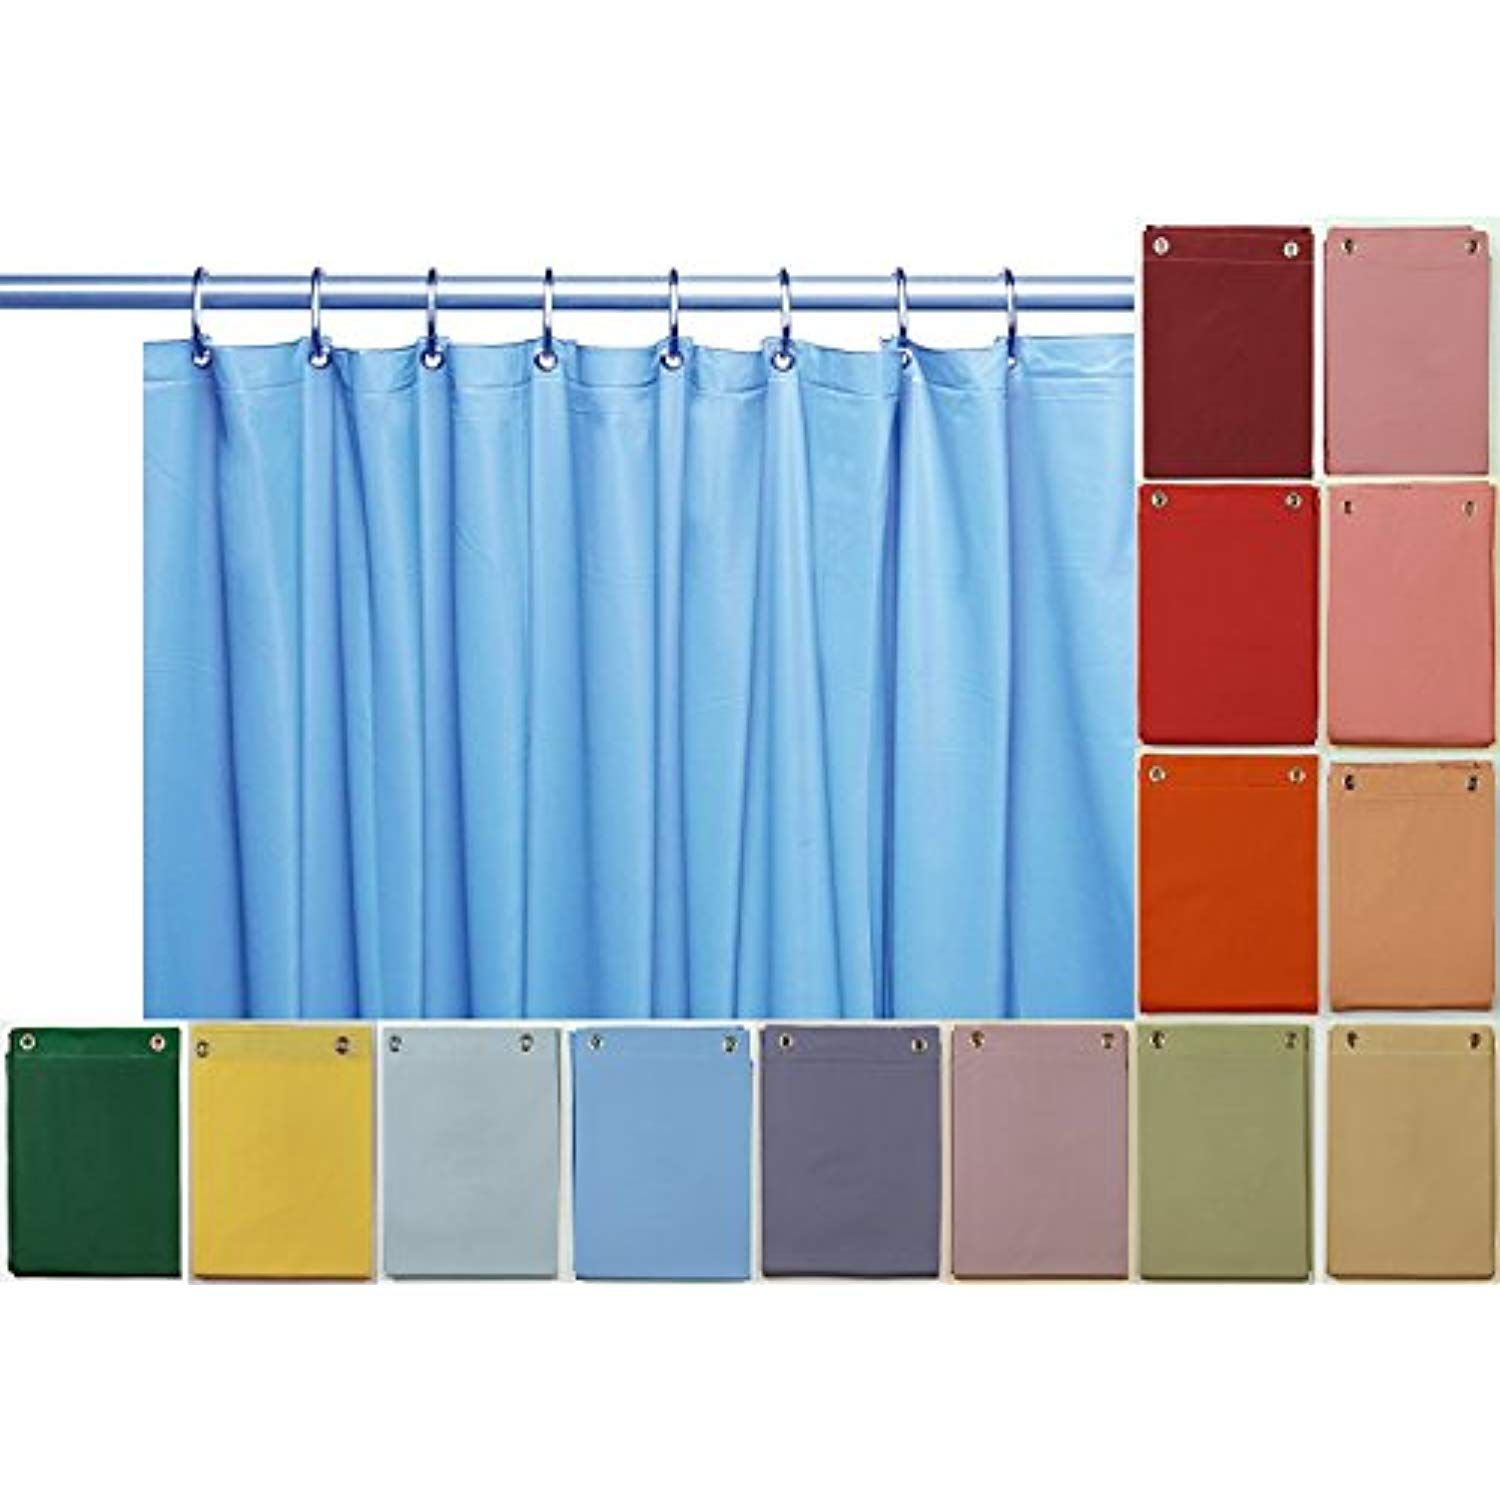 Venice elegant home heavy duty vinyl shower curtain liner with